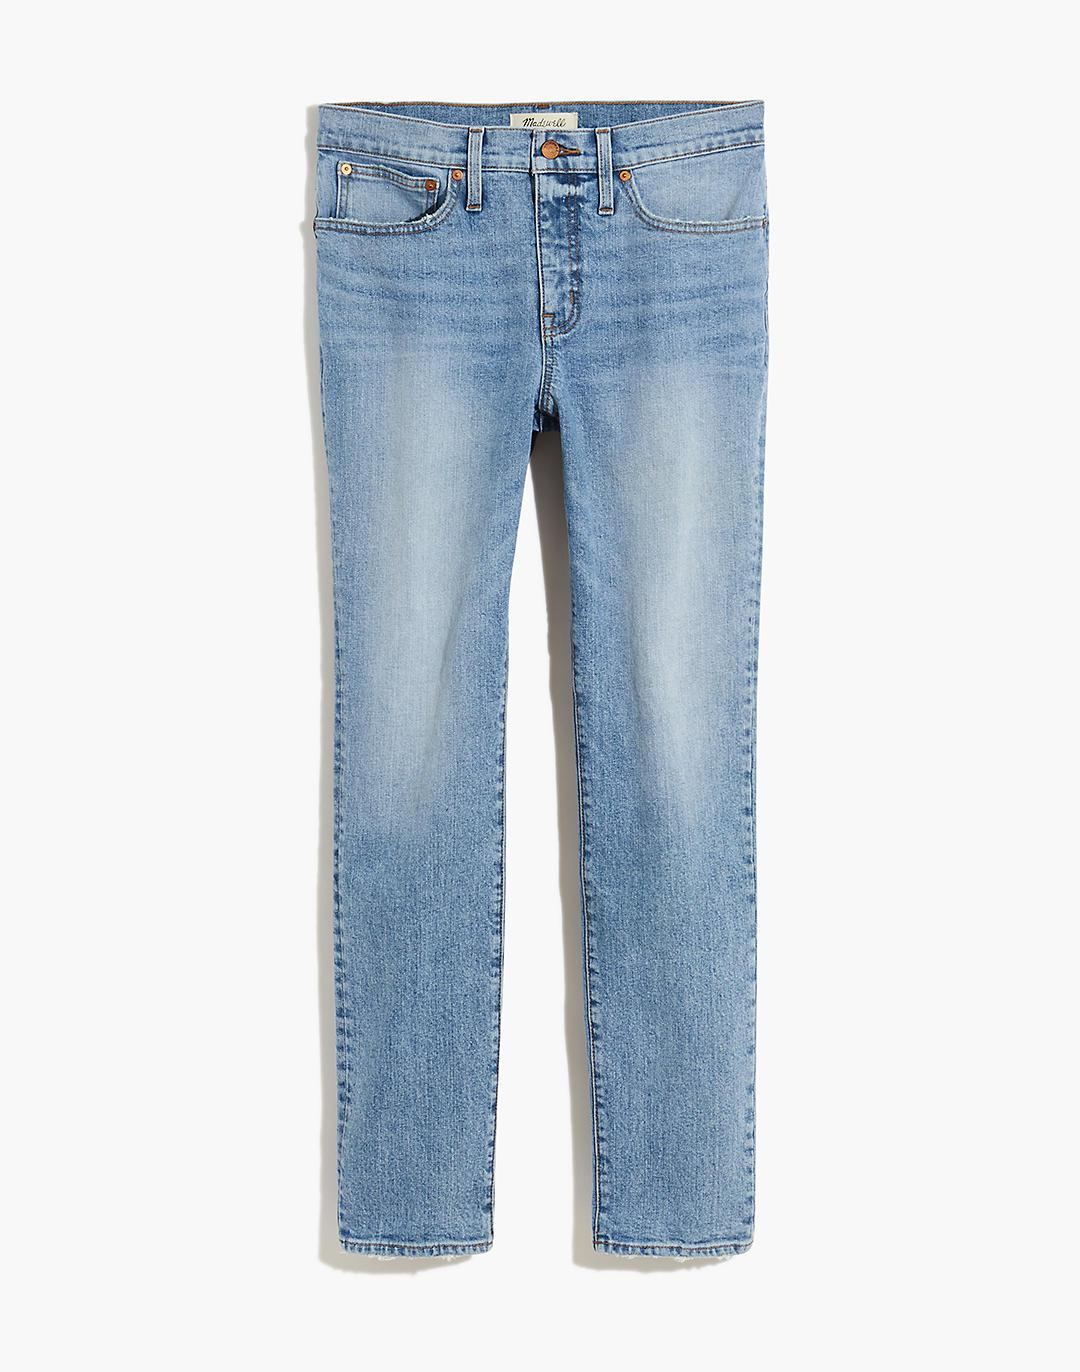 Tomboy Straight Jeans in Glover Wash 4